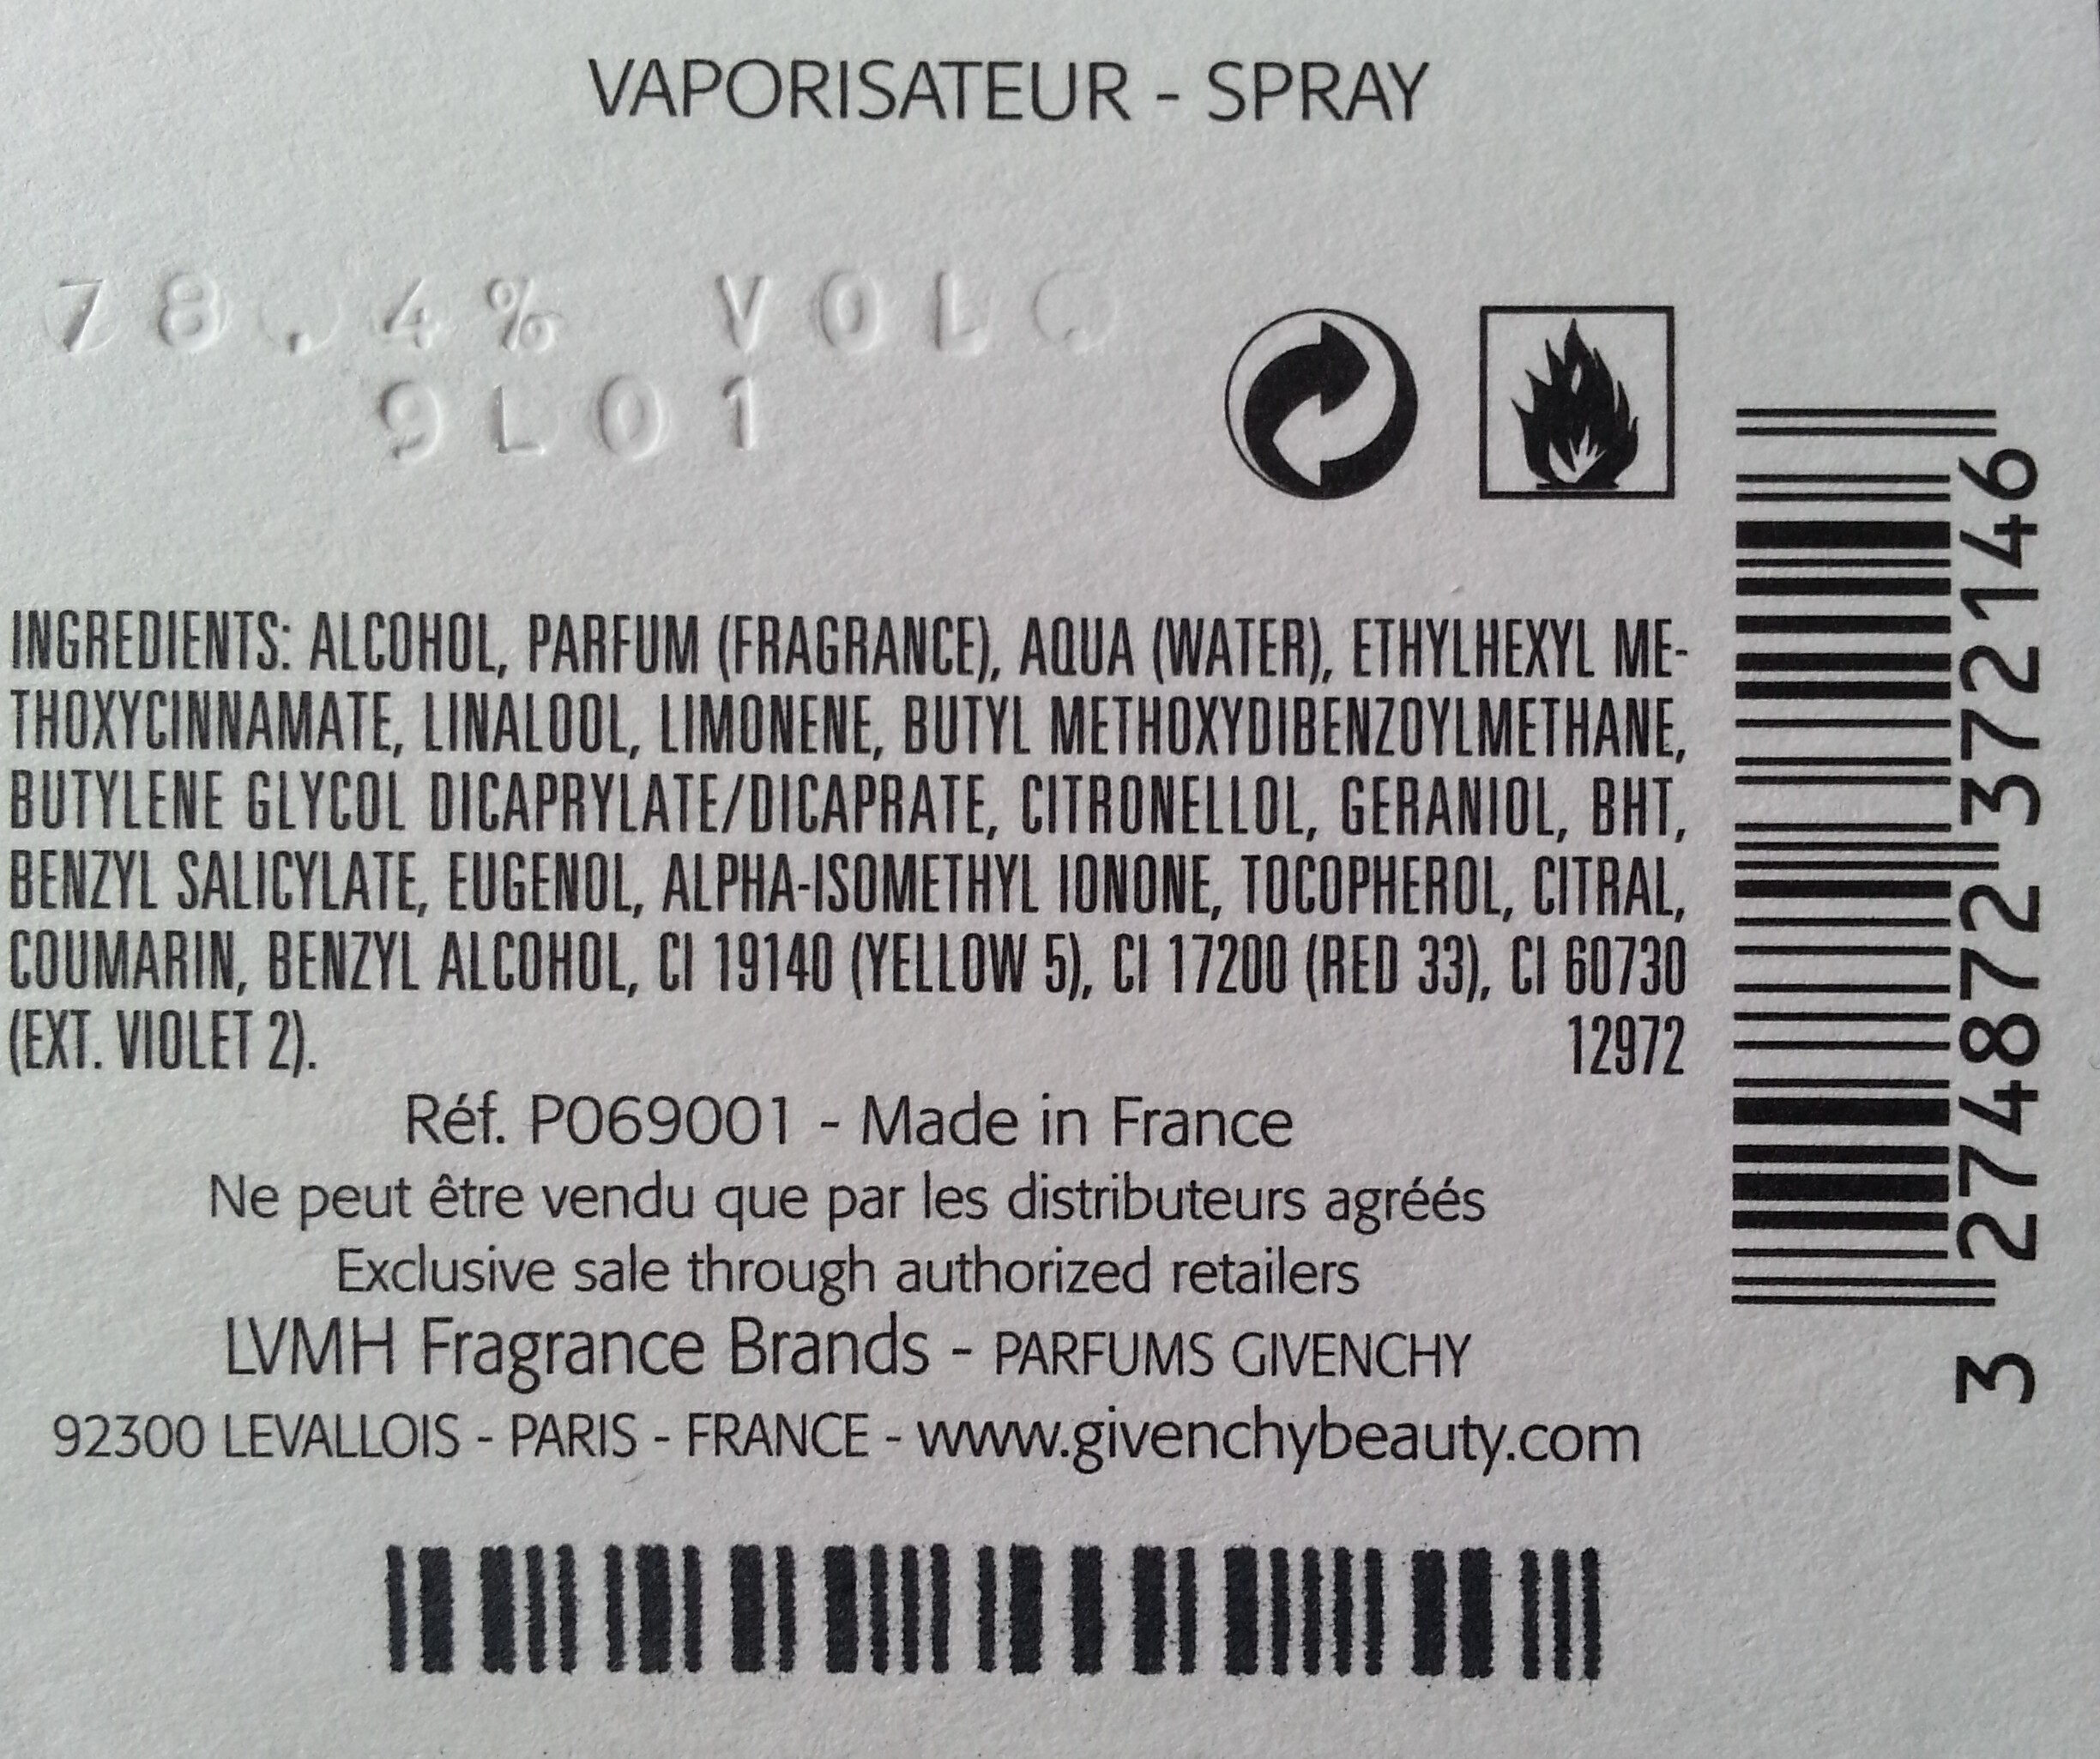 L'interdit - Ingredients